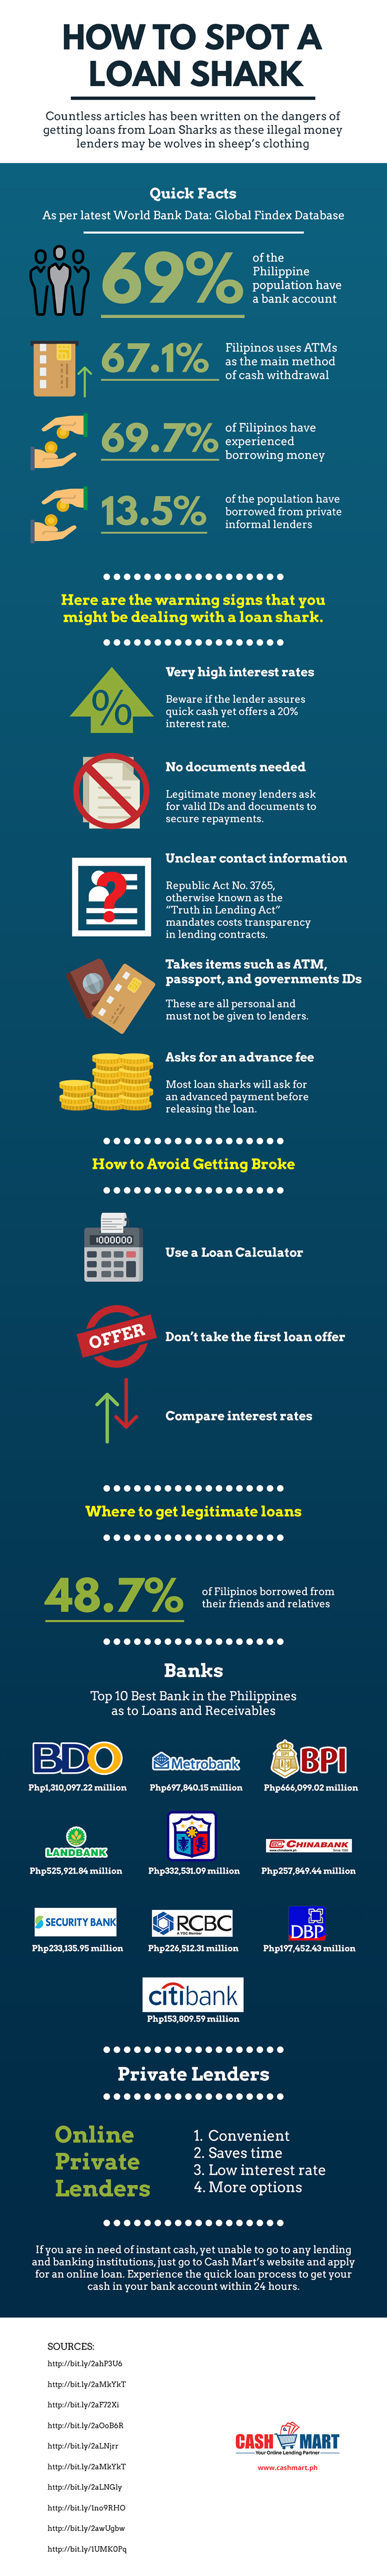 how-to-spot-a-loan-shark_2